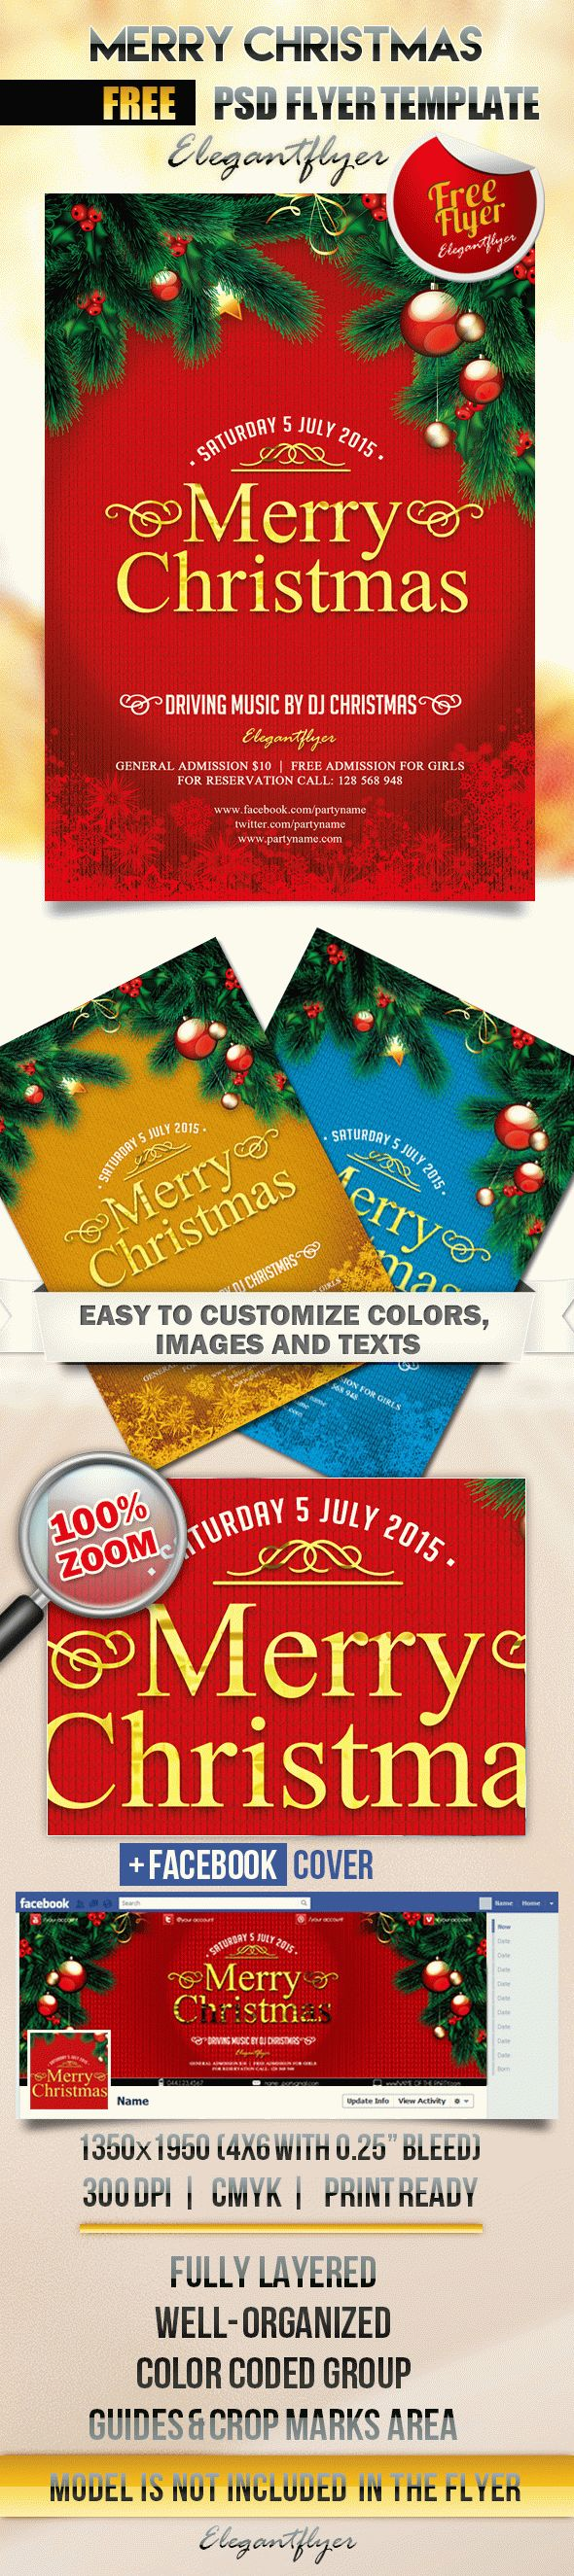 free christmas flyer templates - merry christmas flyer psd template facebook cover by